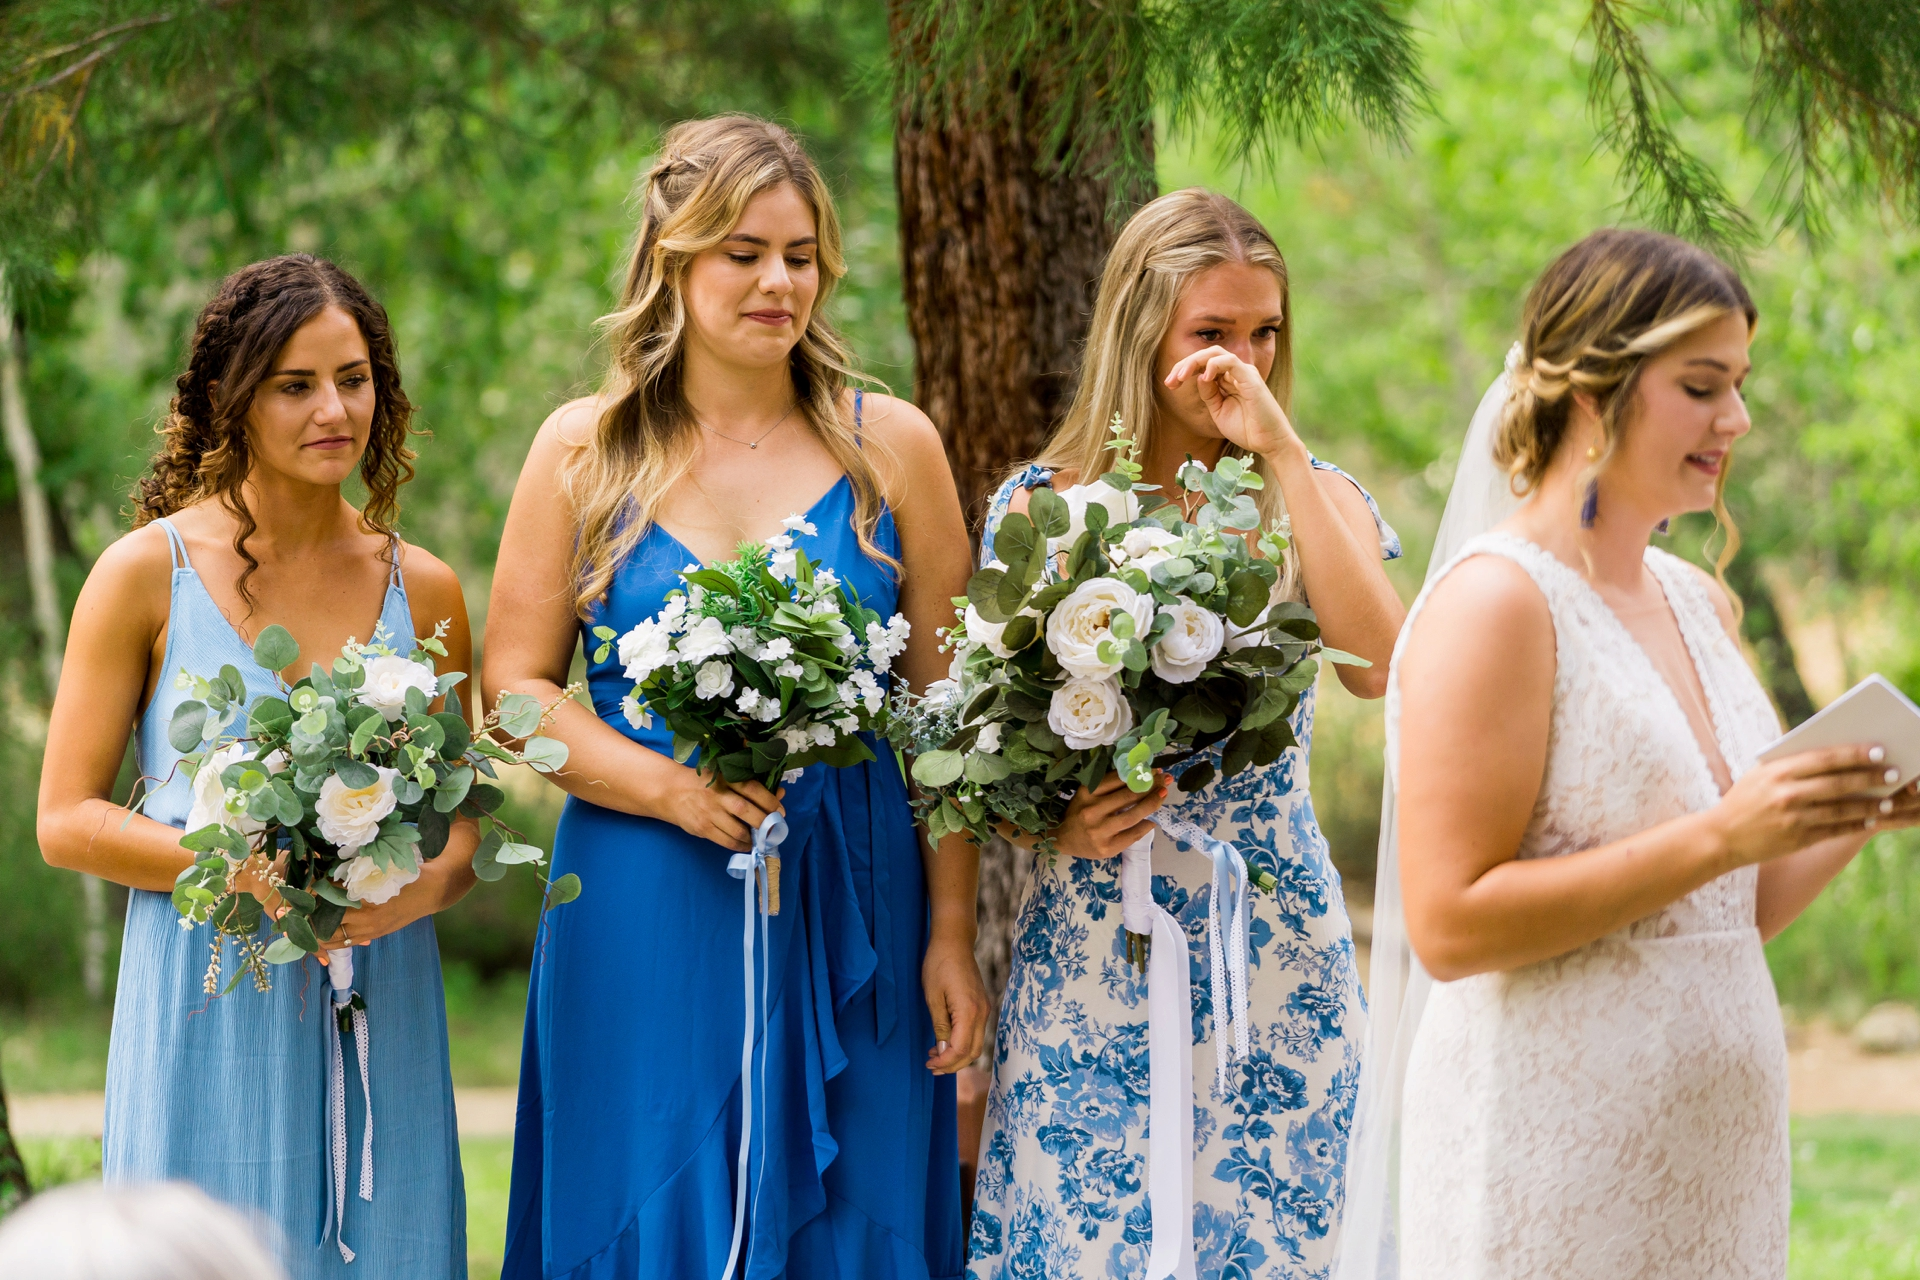 Lake Tahoe Wedding Photographer for LTCC | The wedding party is overcome with emotion in this image